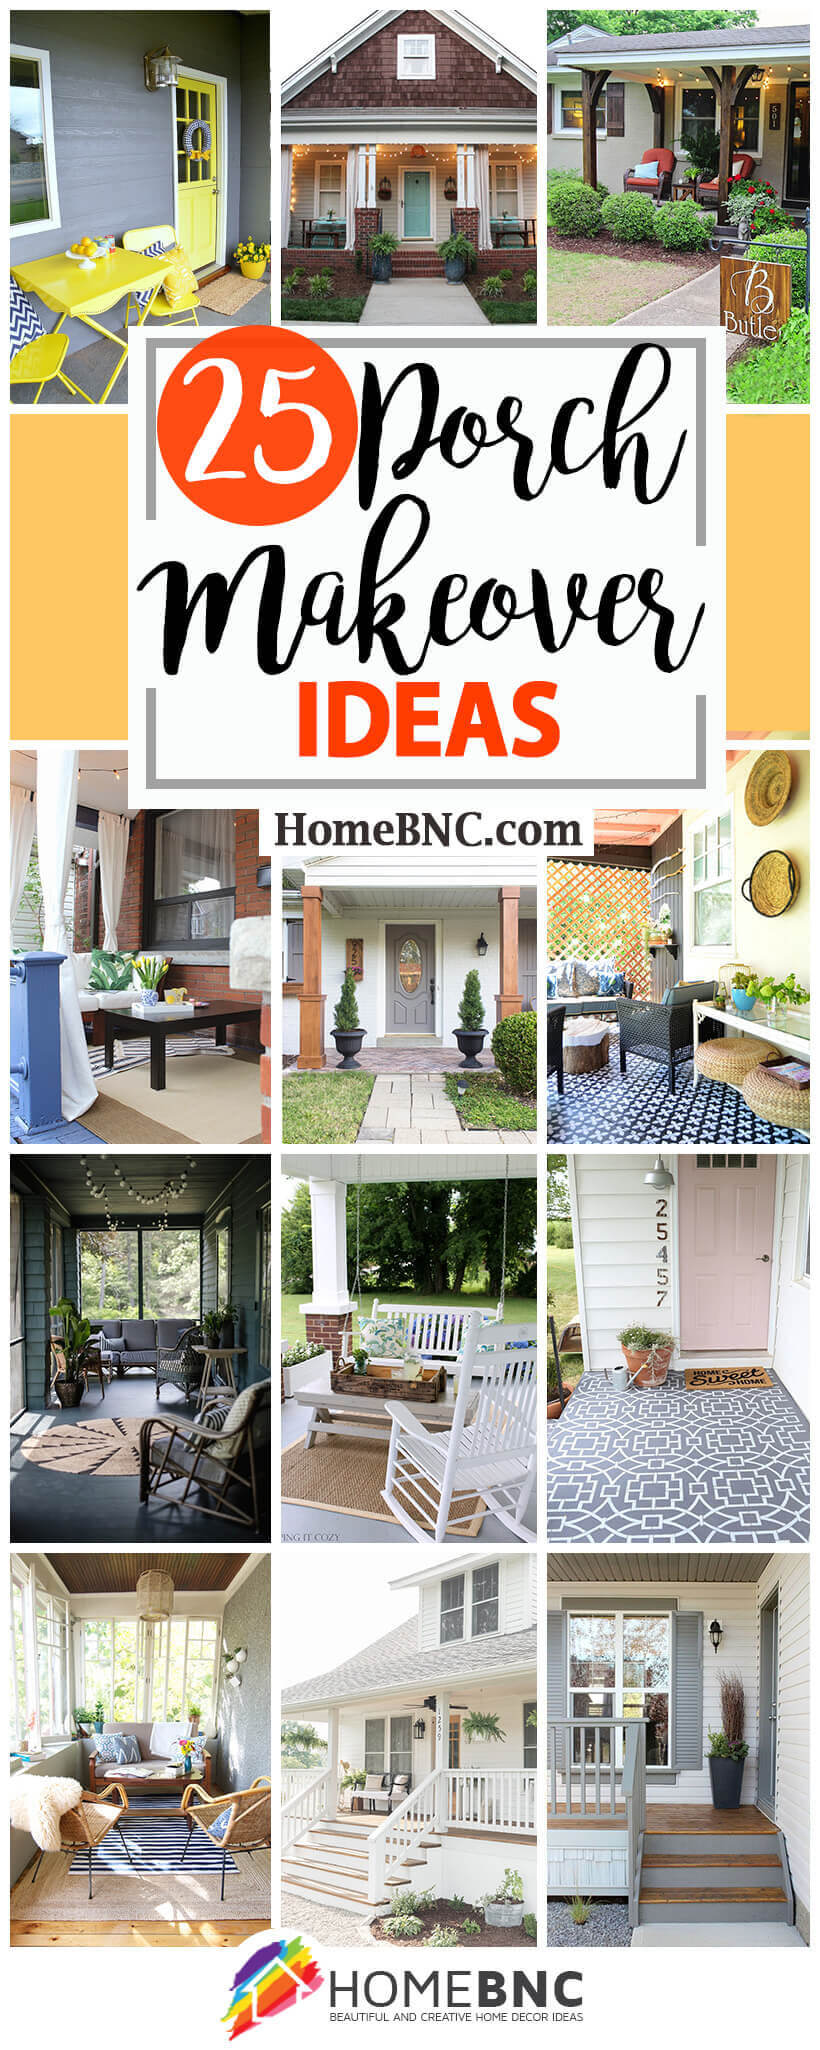 Porch Makeover Ideas